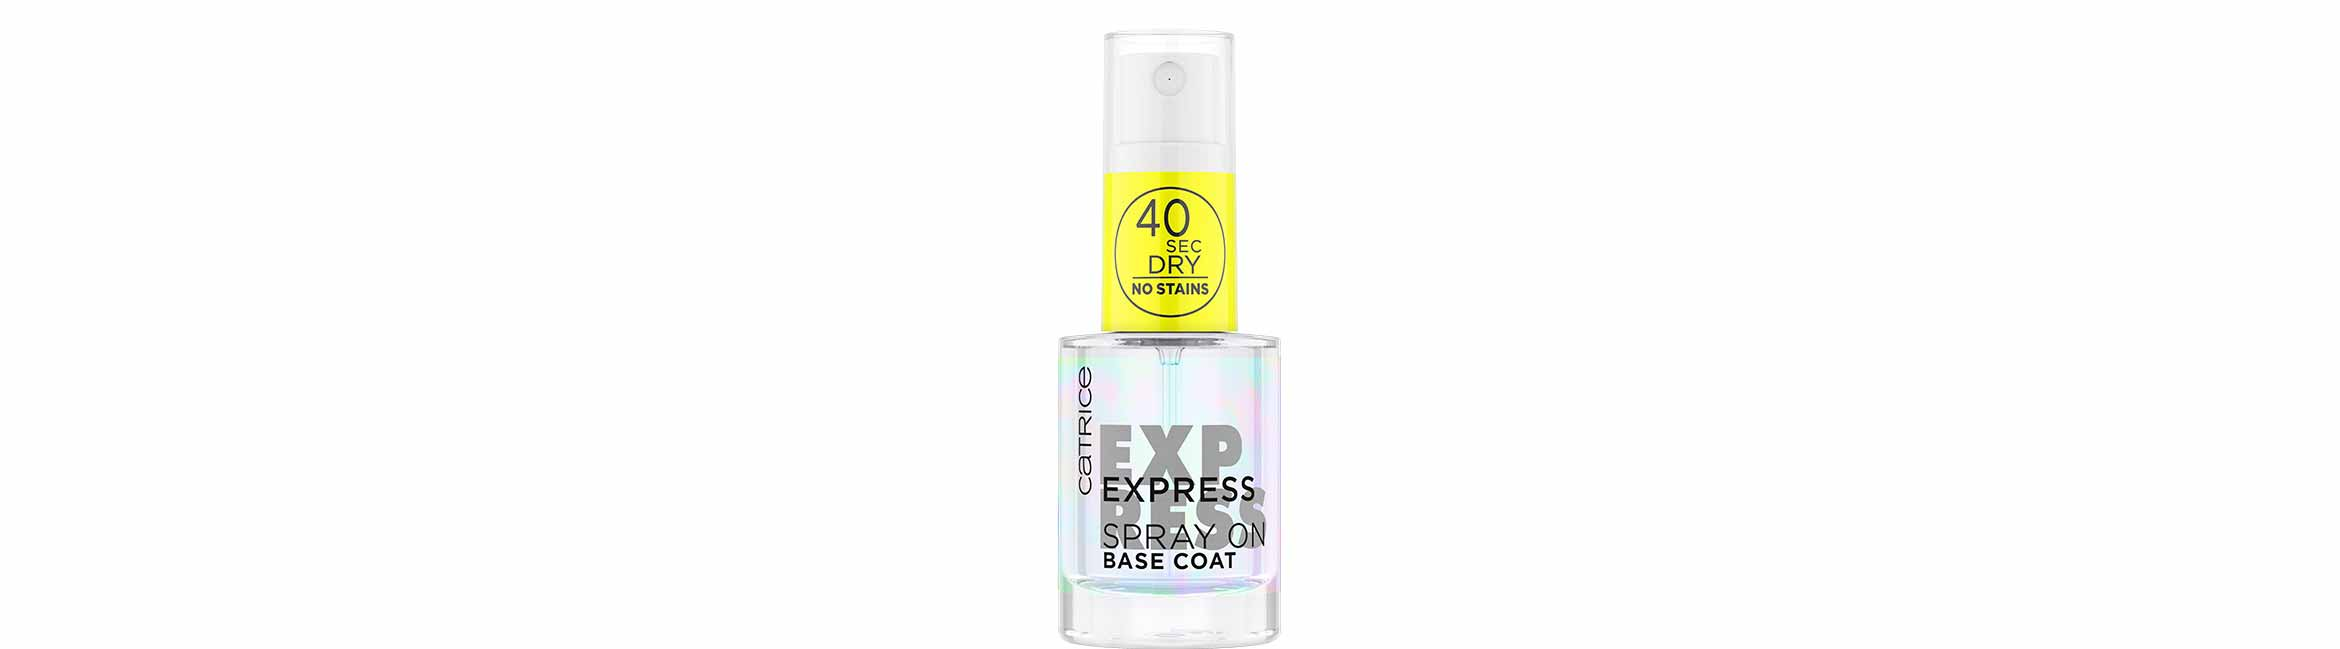 catrice express spray on base coat